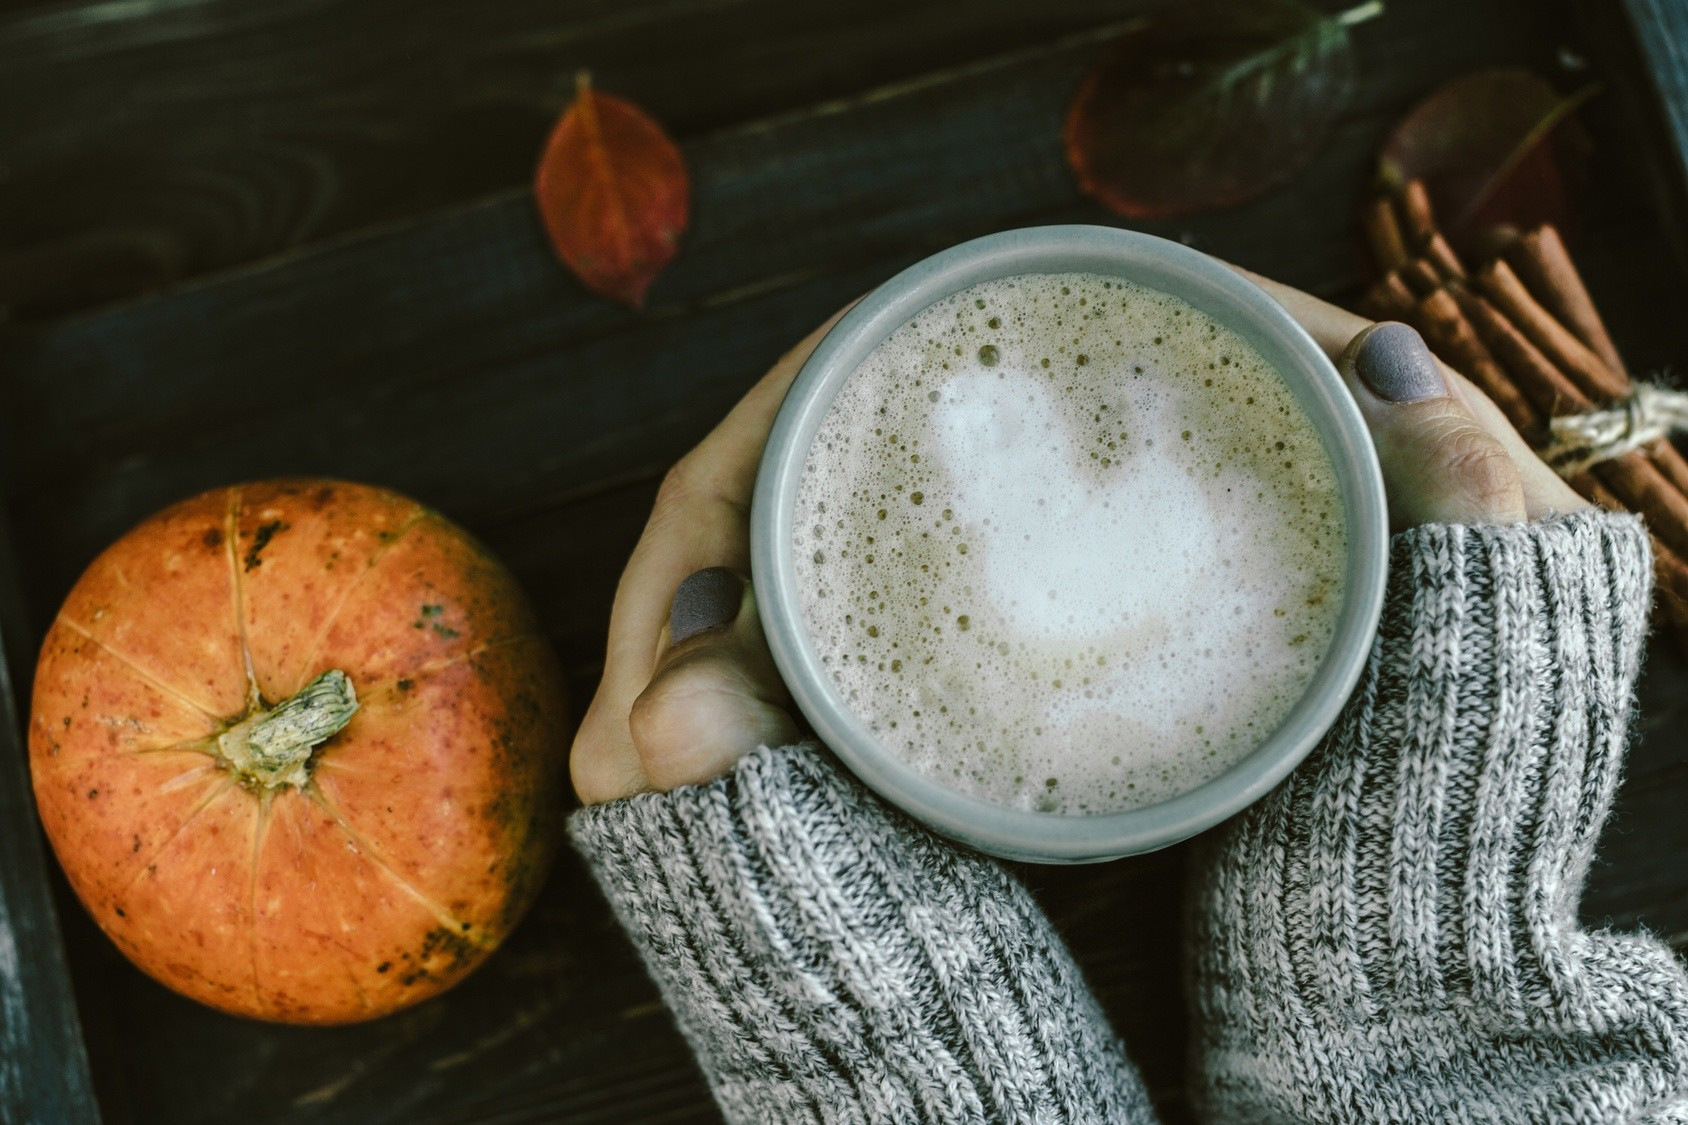 Pumpkin Spice Recipes: 5 Healthy Options to Get Your Fall Fix